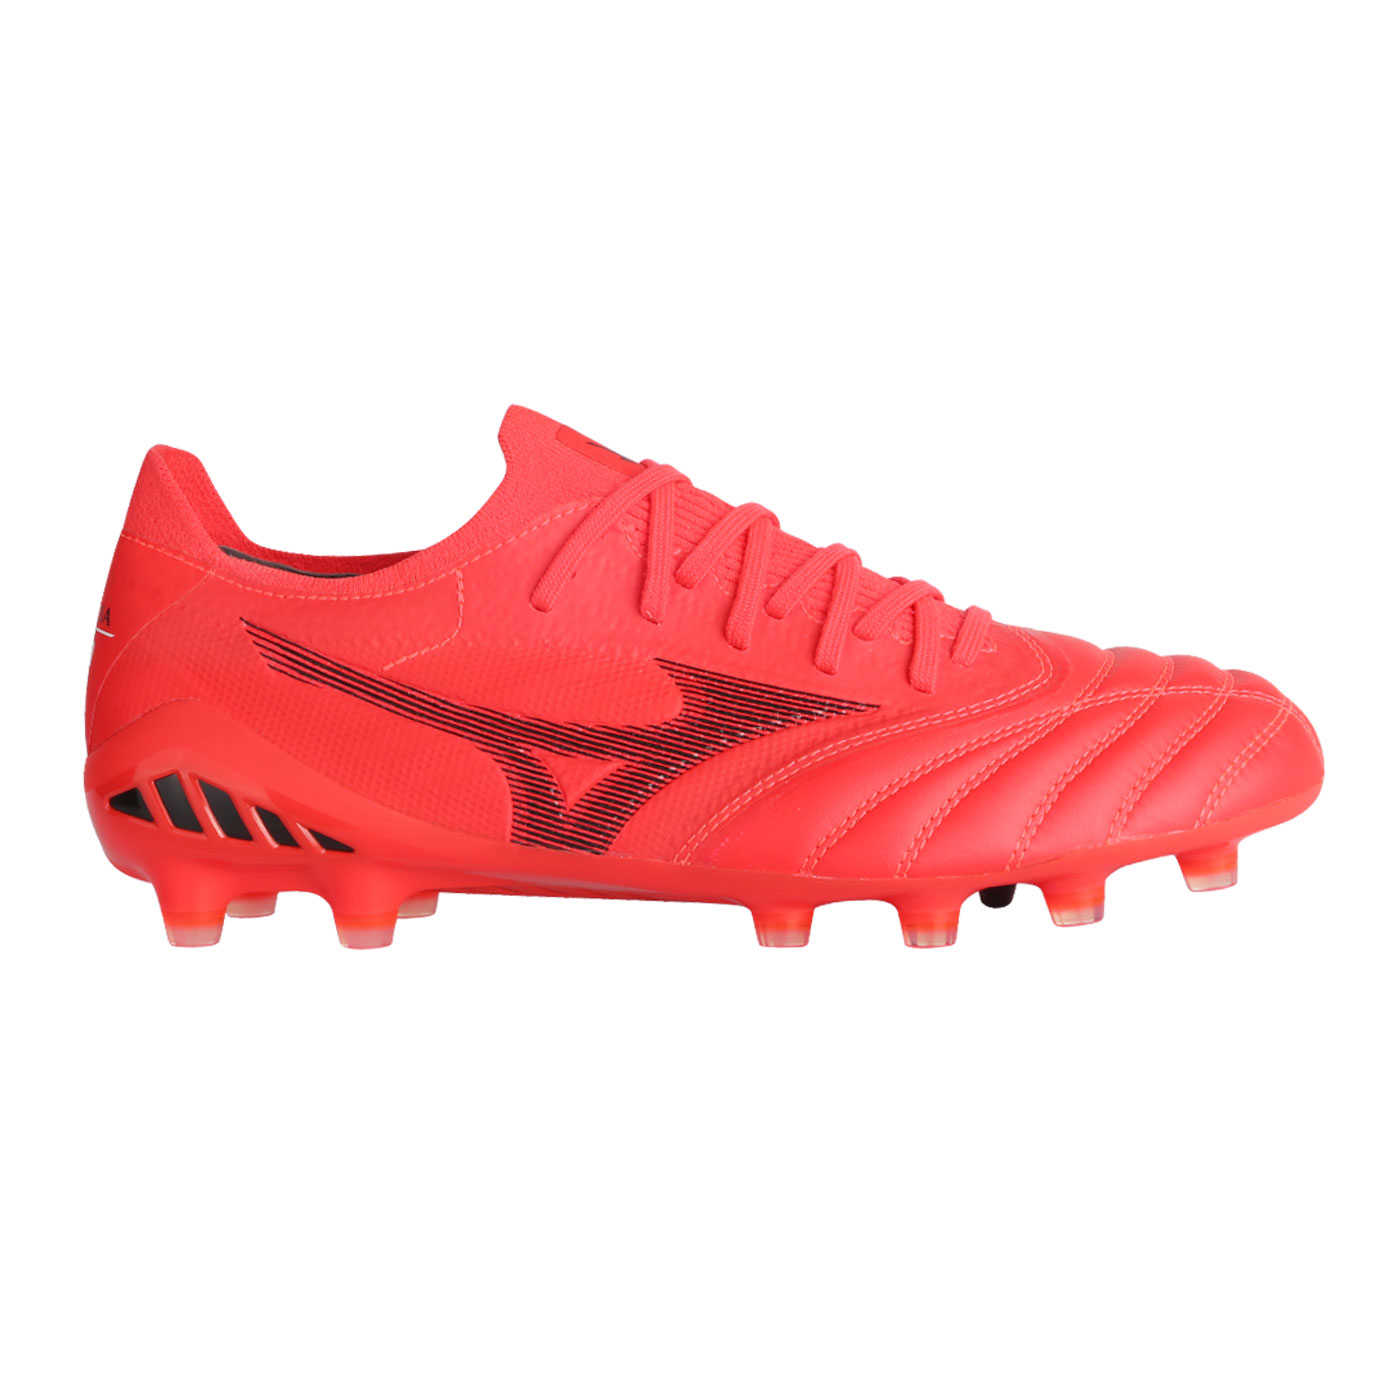 MORELIA NEO III BETA ELITE-IGNITION RED/BLACK